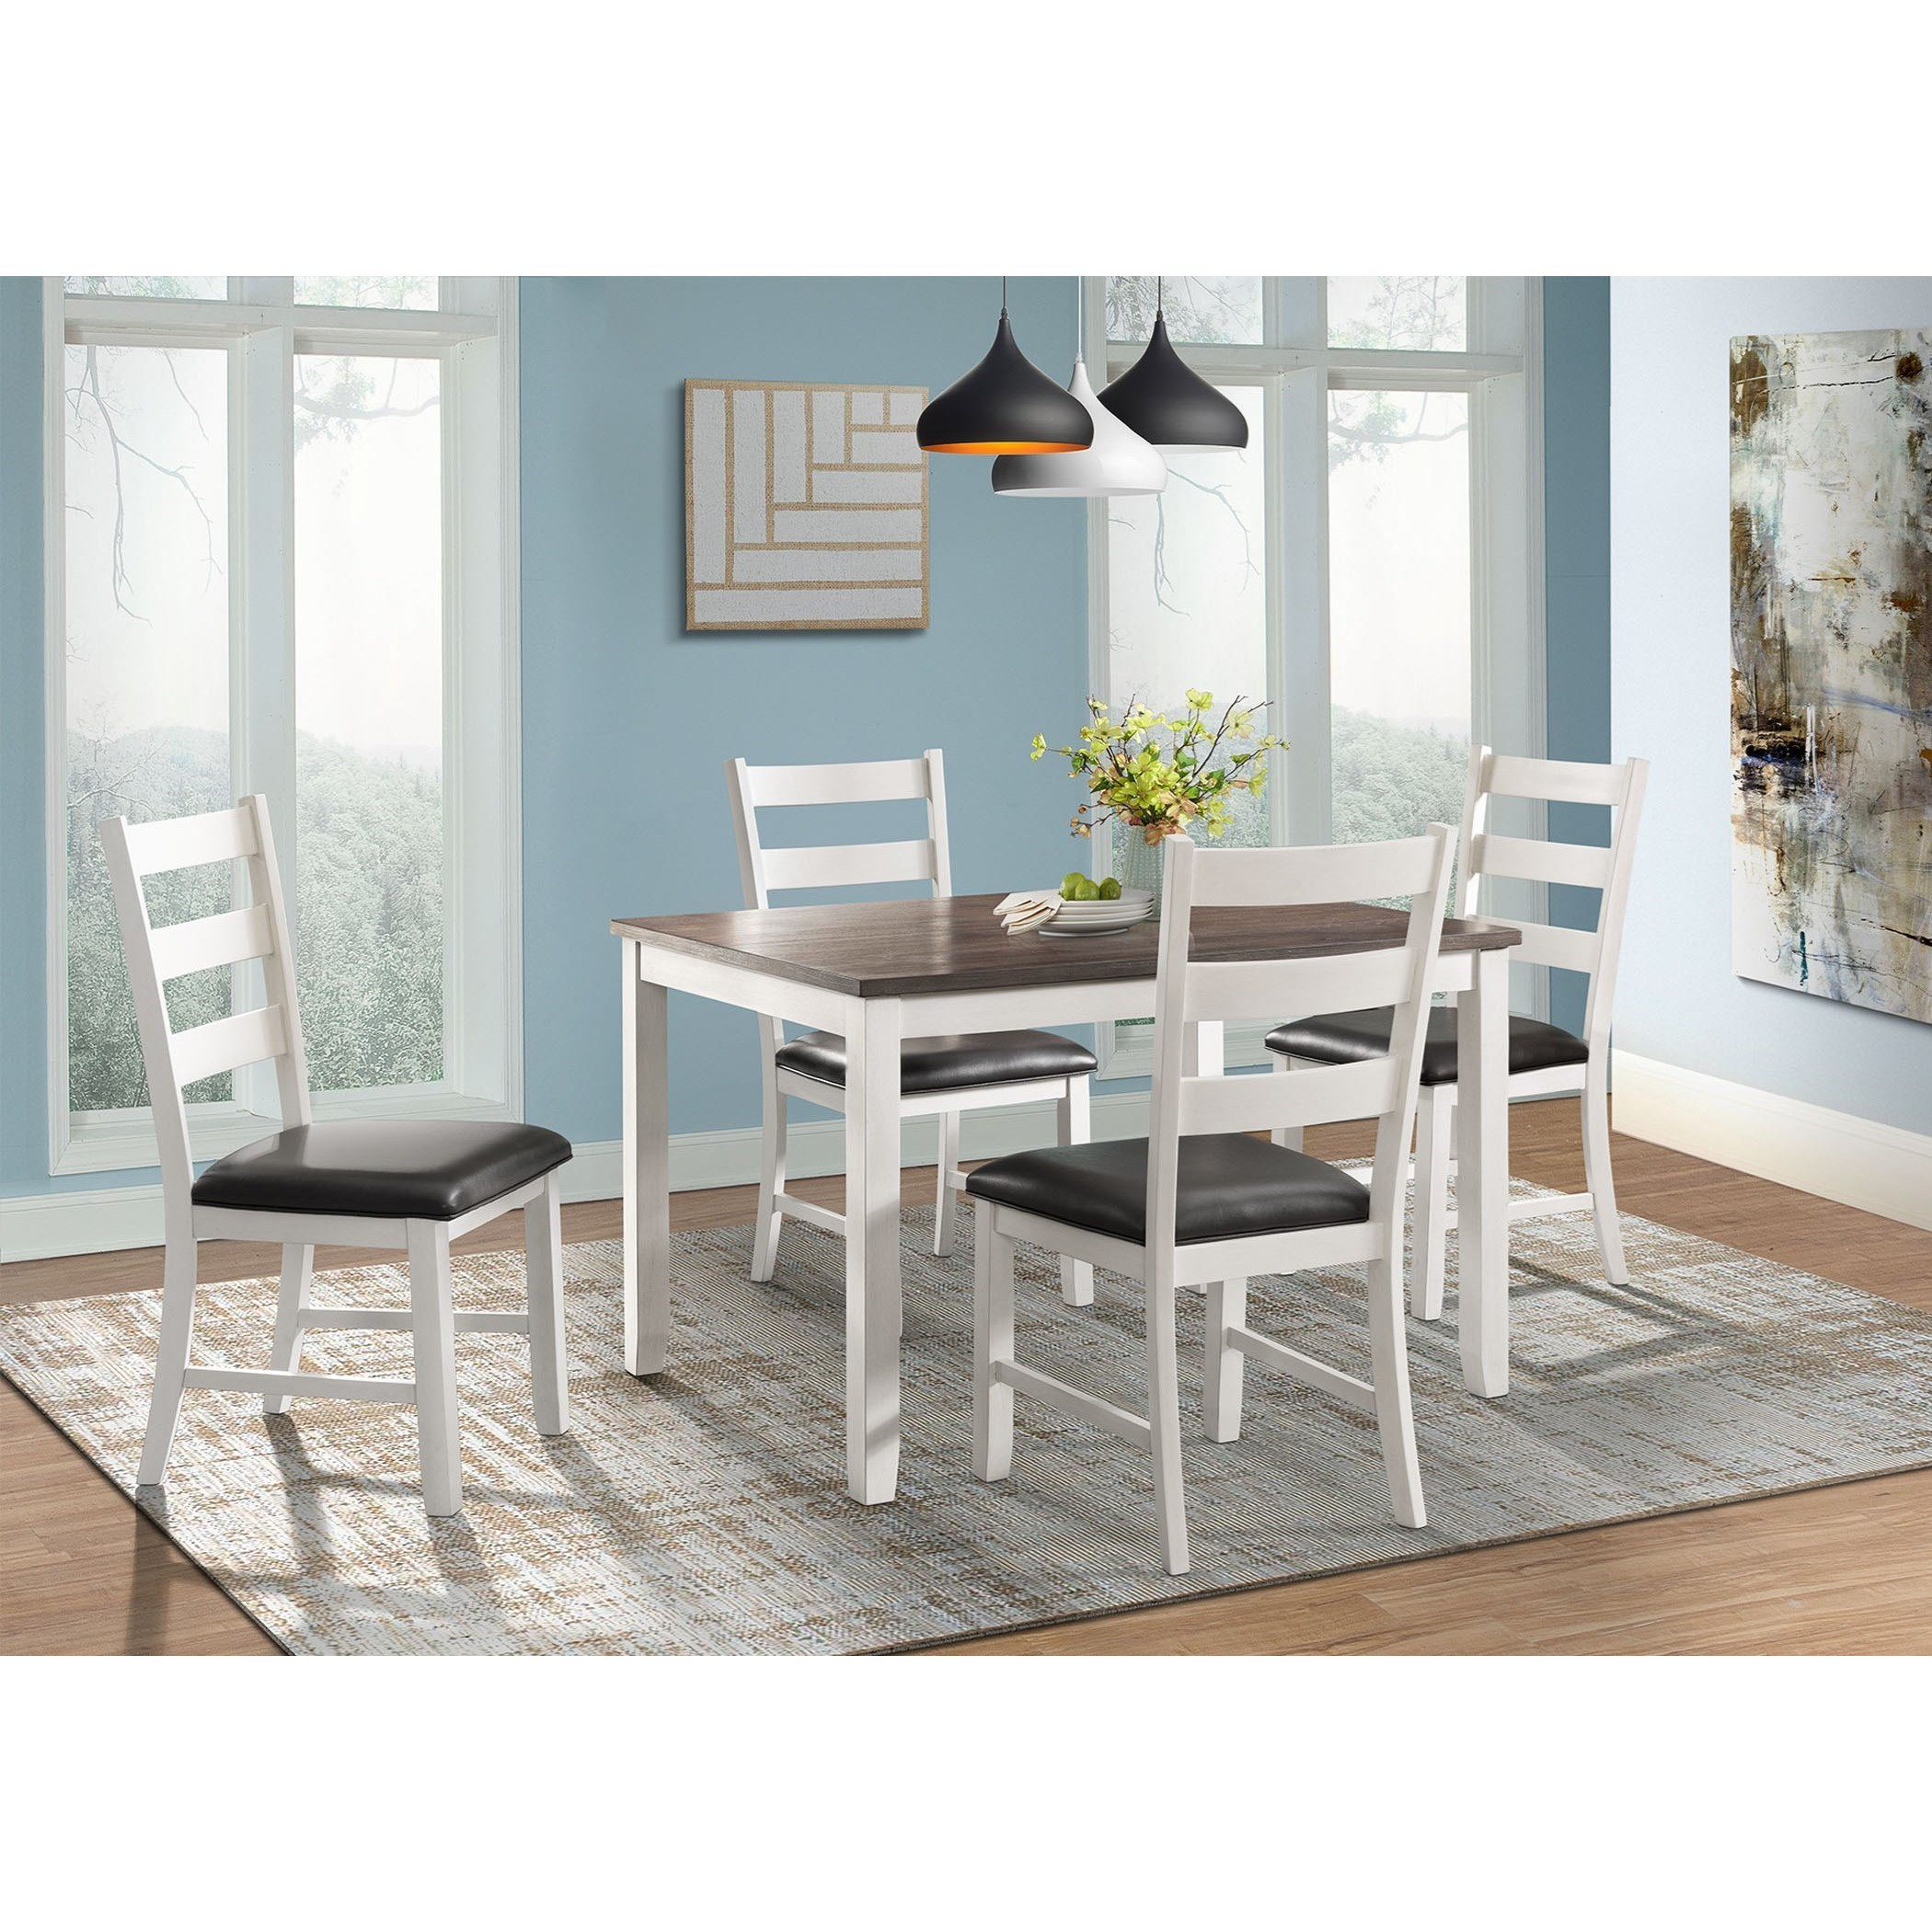 Rustic Dining Table and Chair Set for 4